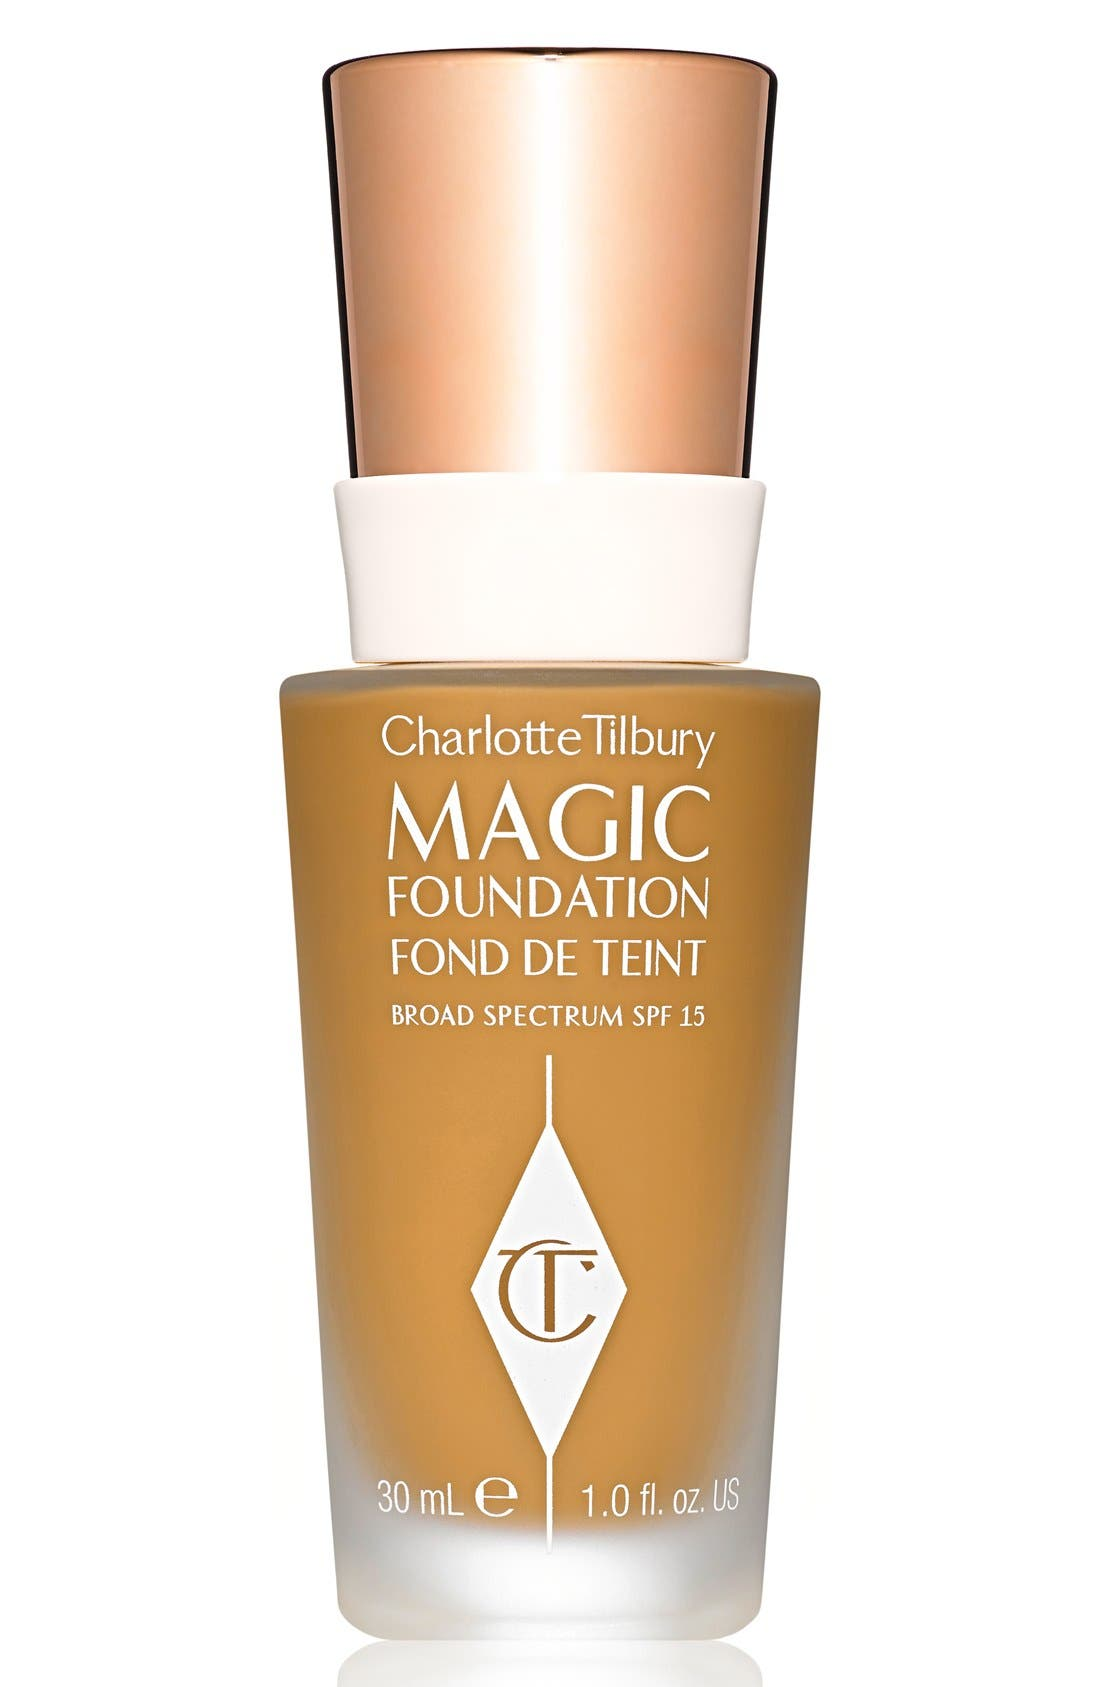 Charlotte Tilbury Magic Foundation Broad Spectrum SPF 15